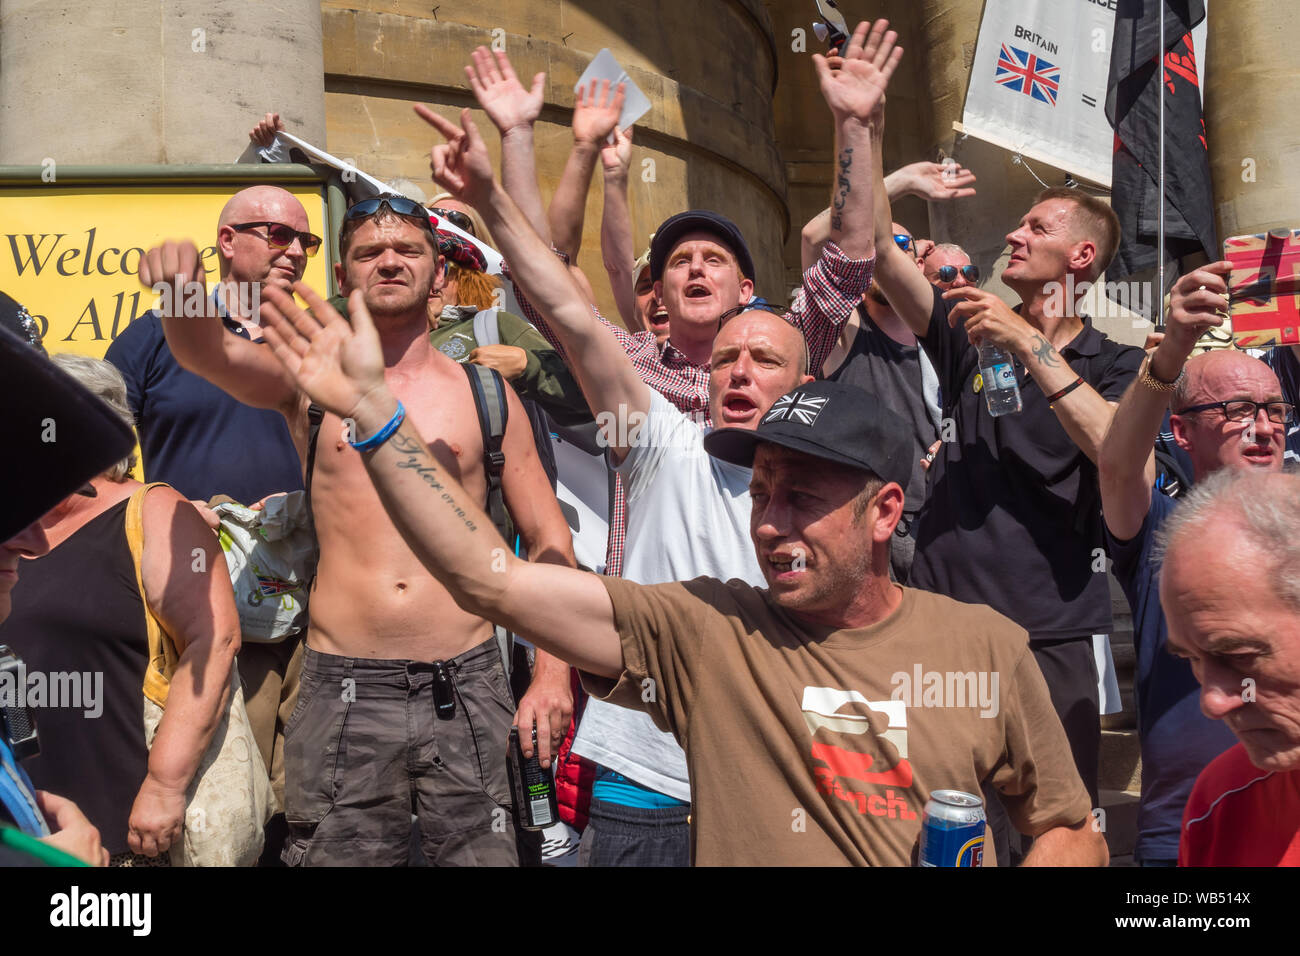 London, UK. 24th Aug, 2019. Tommy Robinson supporters protest at the BBC. They claim he is in jail for journalism. He was sentenced to 9 months for 3 offences outside Leeds Crown Court which could have led to the collapse of a grooming gang trial, and has previous convictions for violence, financial and immigration frauds, drug possession and public order offences. Police kept the two groups apart. Robinson supporters were later joined by marchers from Trafalgar Square, and a larger group from Stand Up to Racism came to join Antifa. Credit: Peter Marshall/Alamy Live News Stock Photo